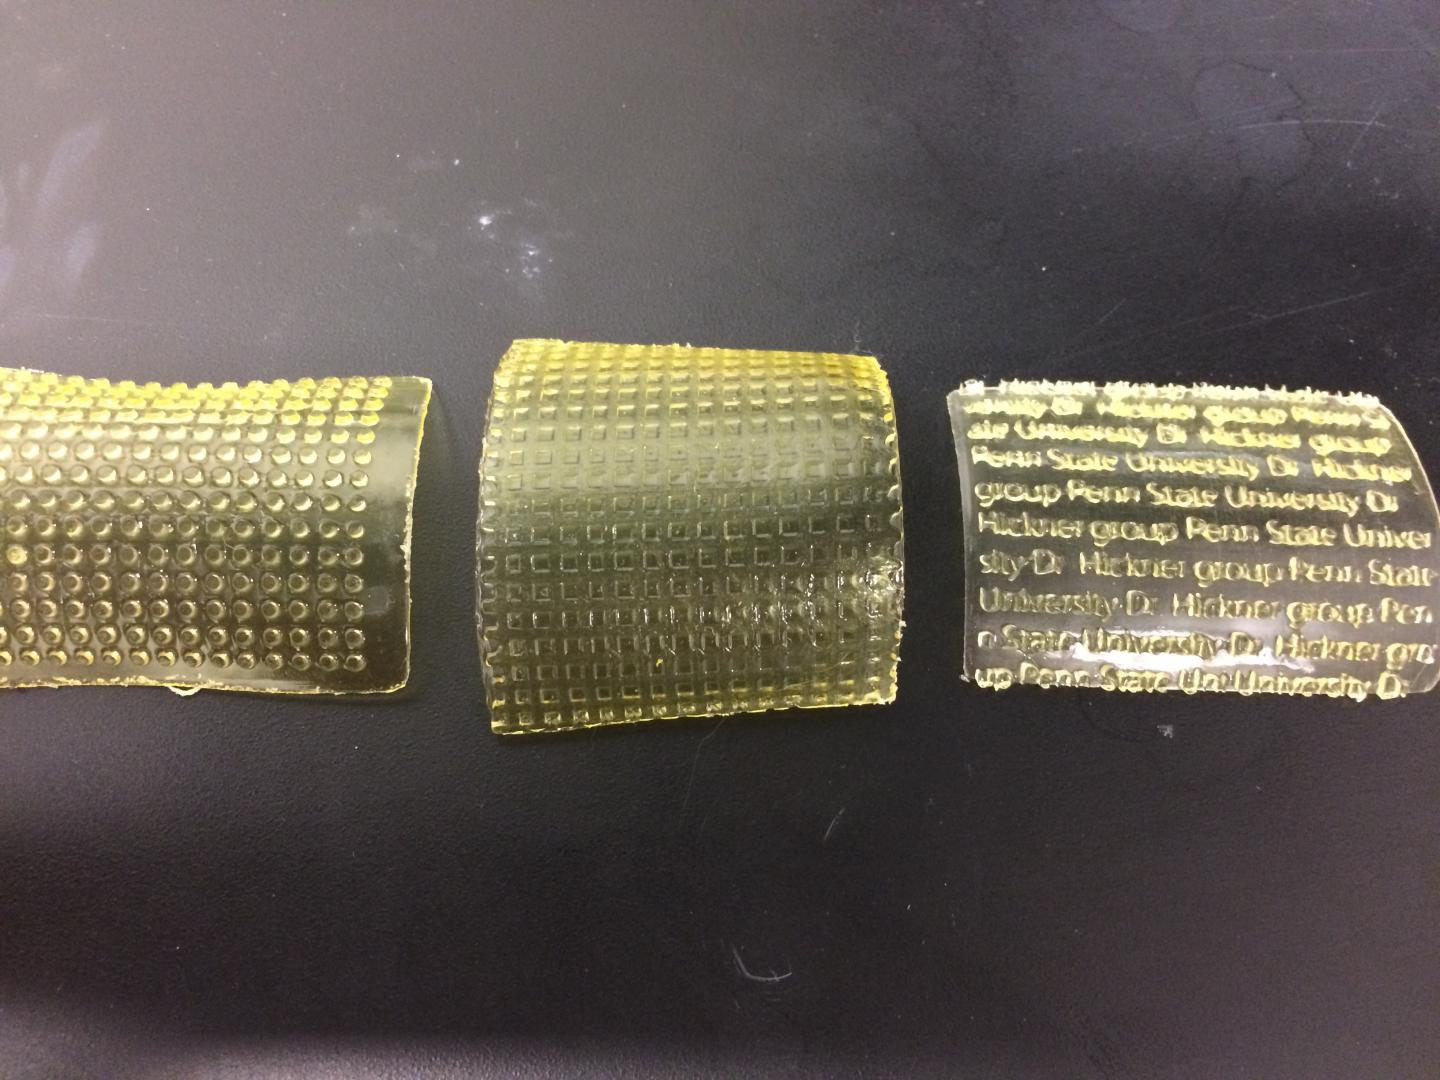 Membrane Created by 3-D Printing